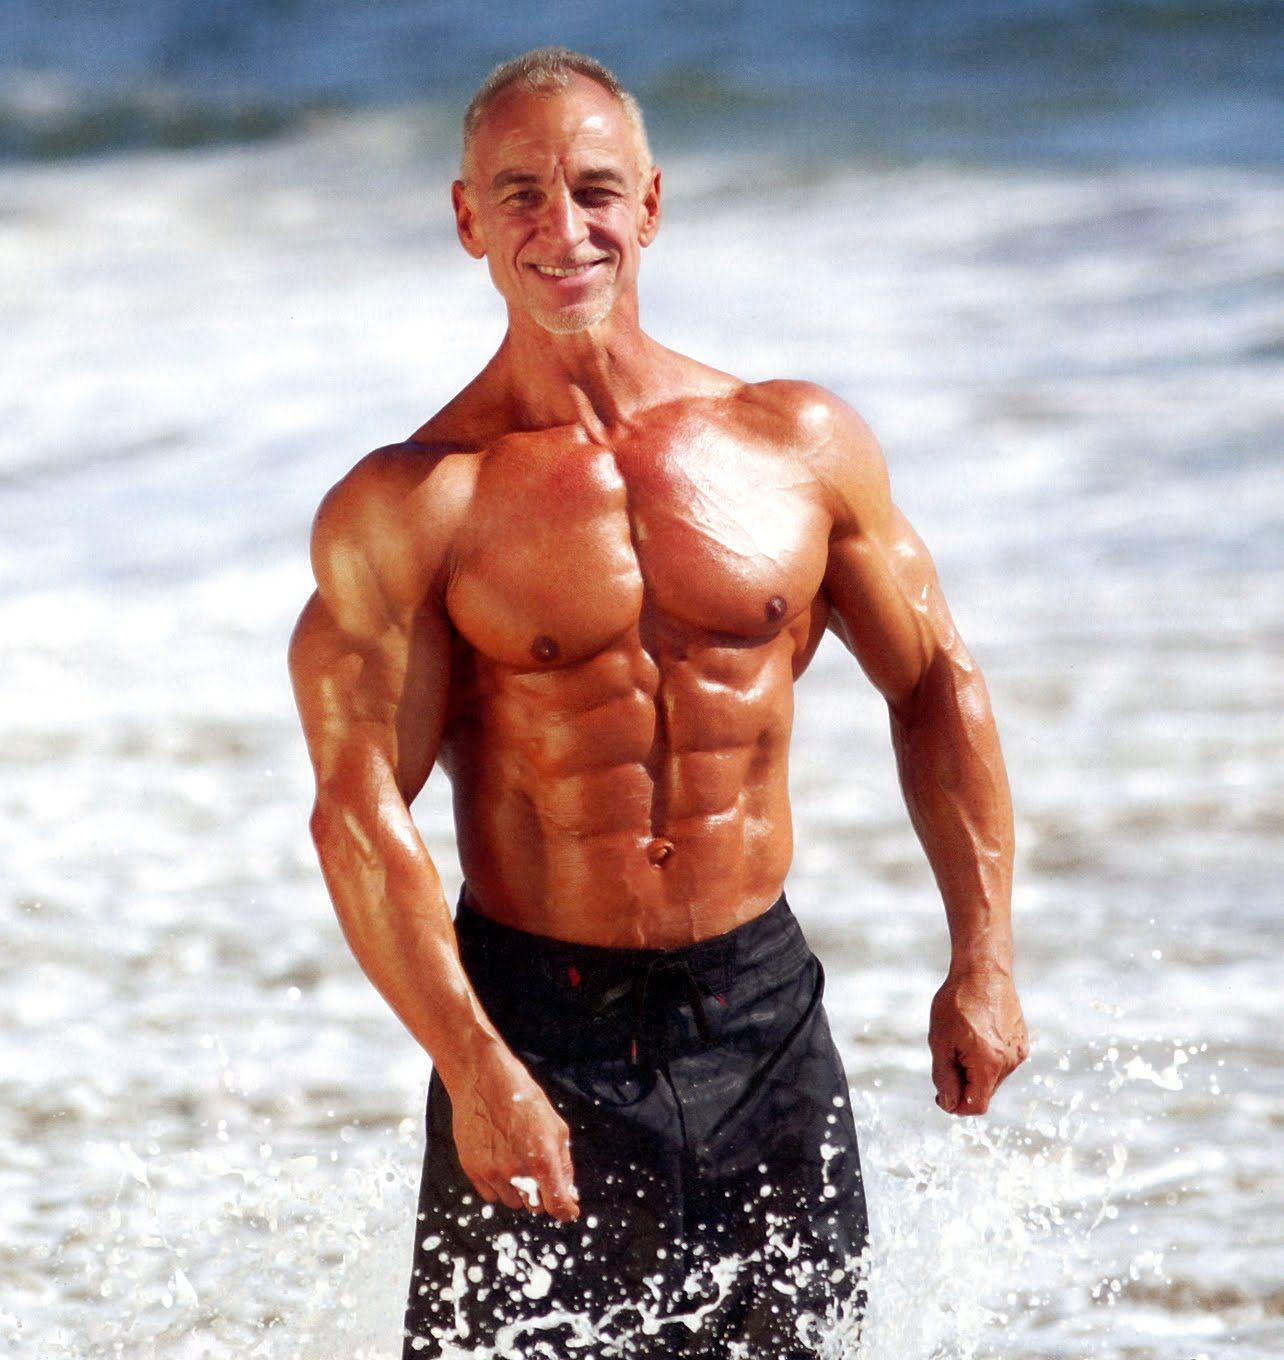 Dave Goodin 55 Year Old Natural Steroid Free Bodybuilder Workout Motivation Women Fitness Motivation Popular Workouts